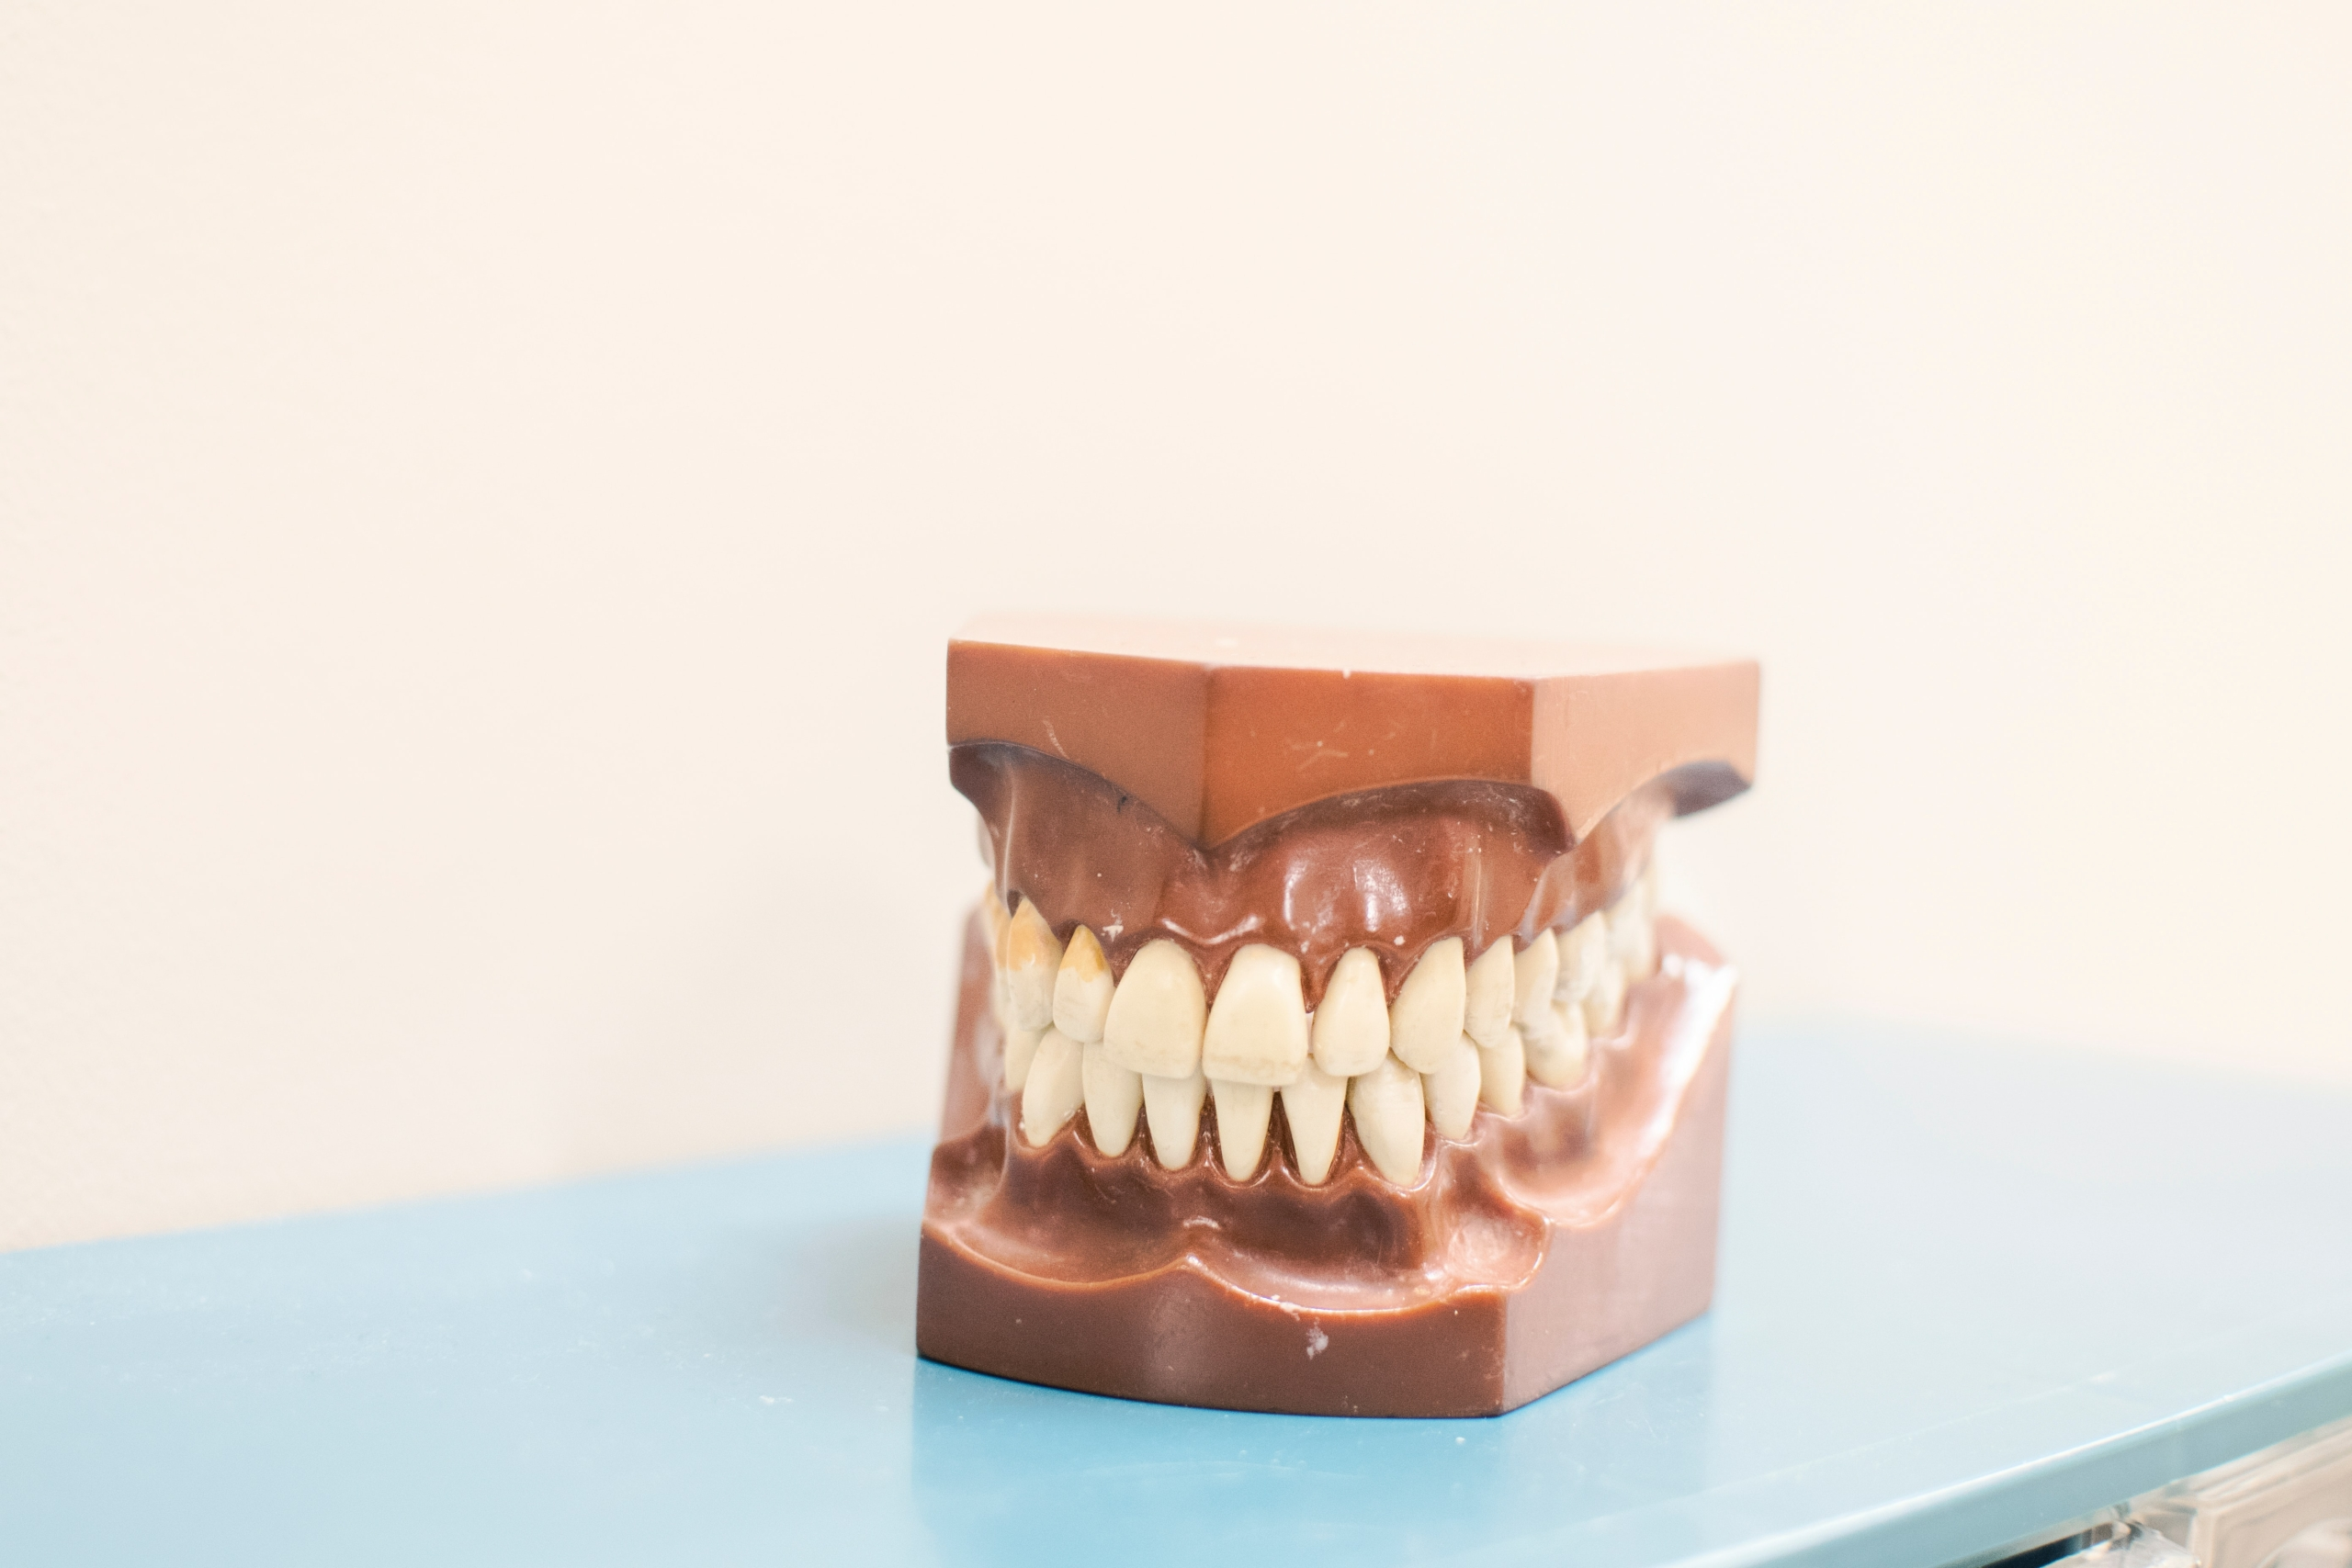 Forensic identification in teeth with caries